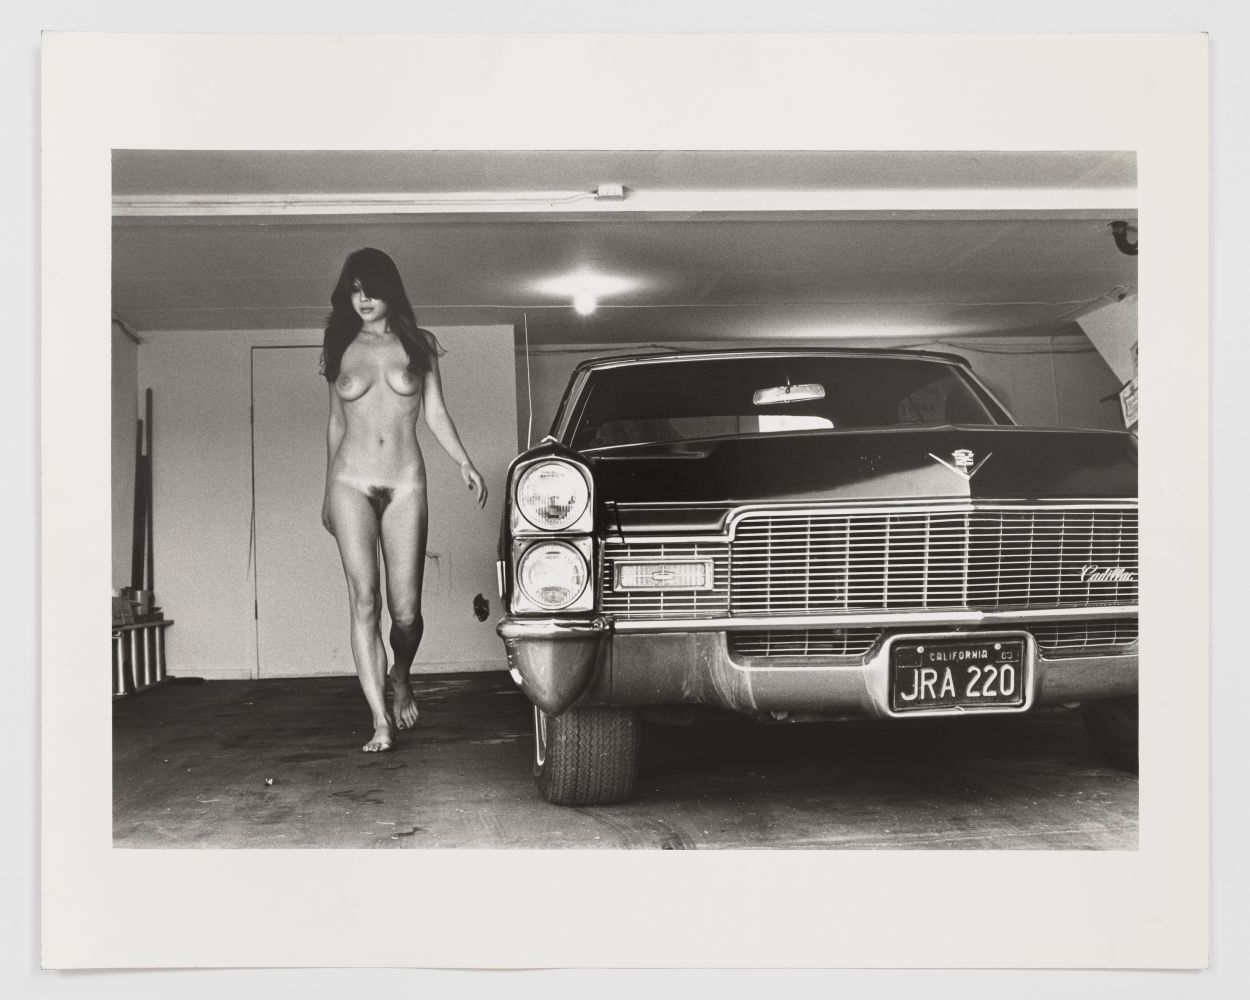 Black and white photographic print of a nude woman standing beside a car